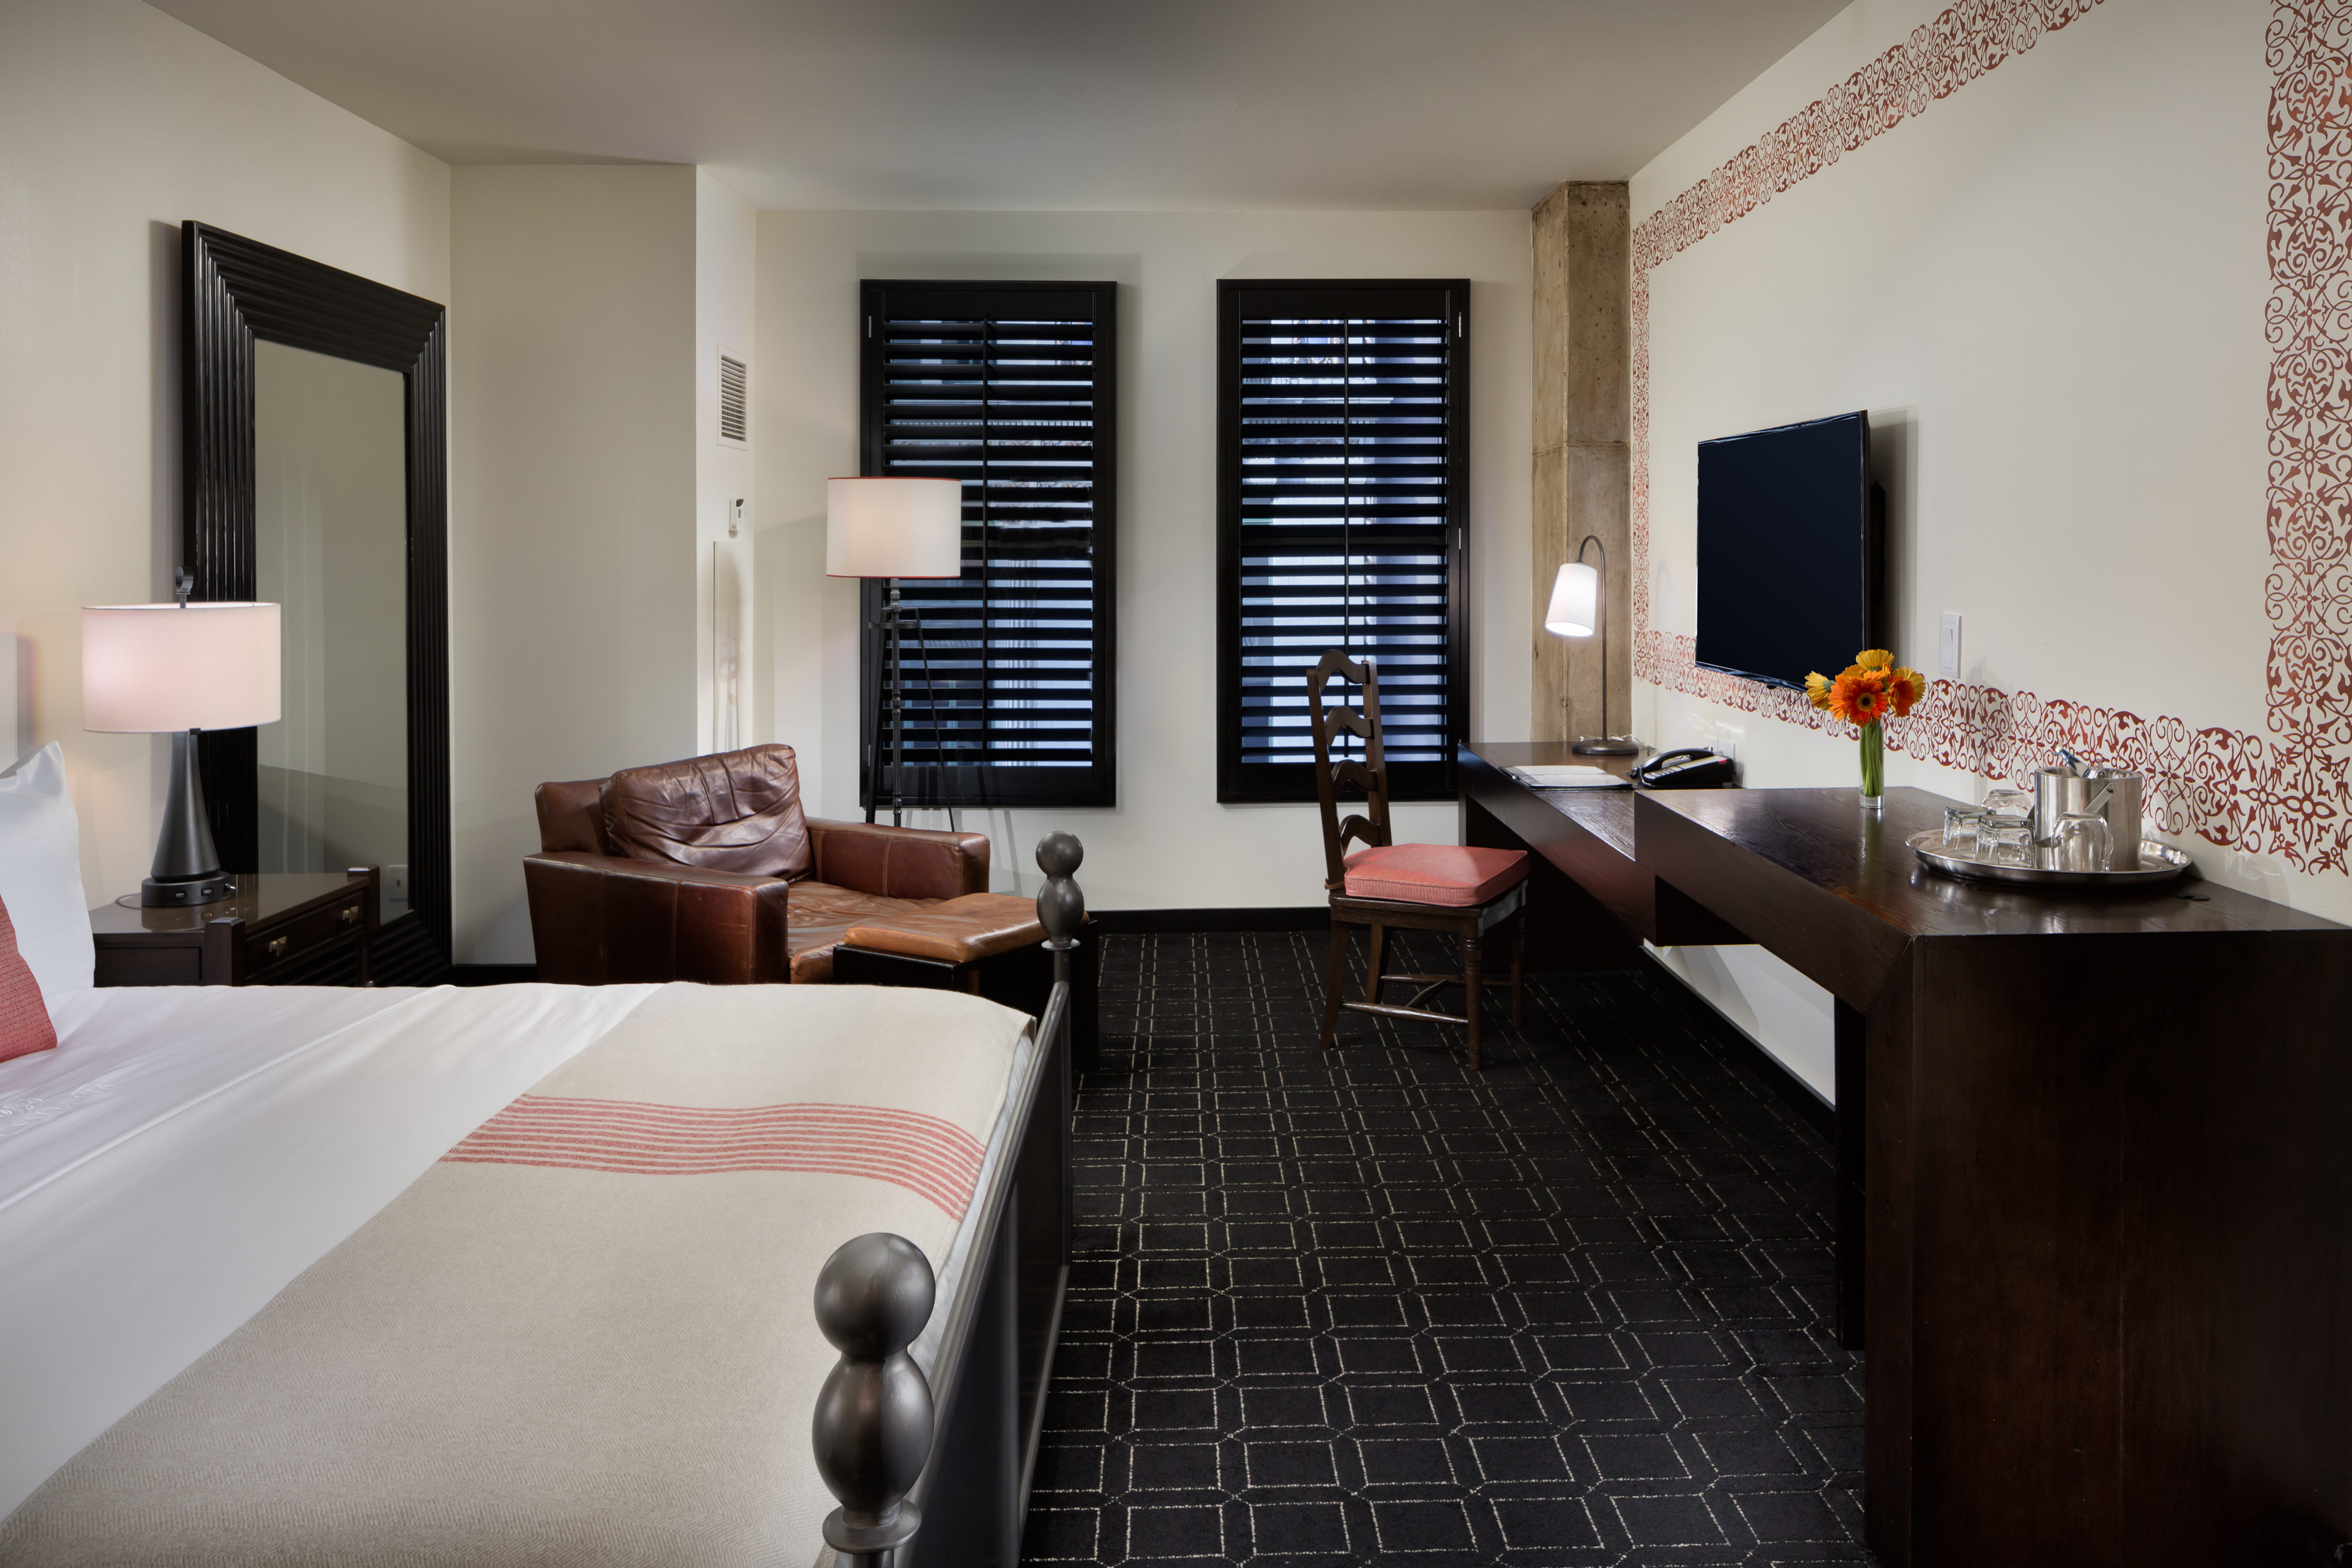 flat panel lcd color tv an oversized leather armchair desk and private bar the full bathroom offers a traditional bathtub and shower combination